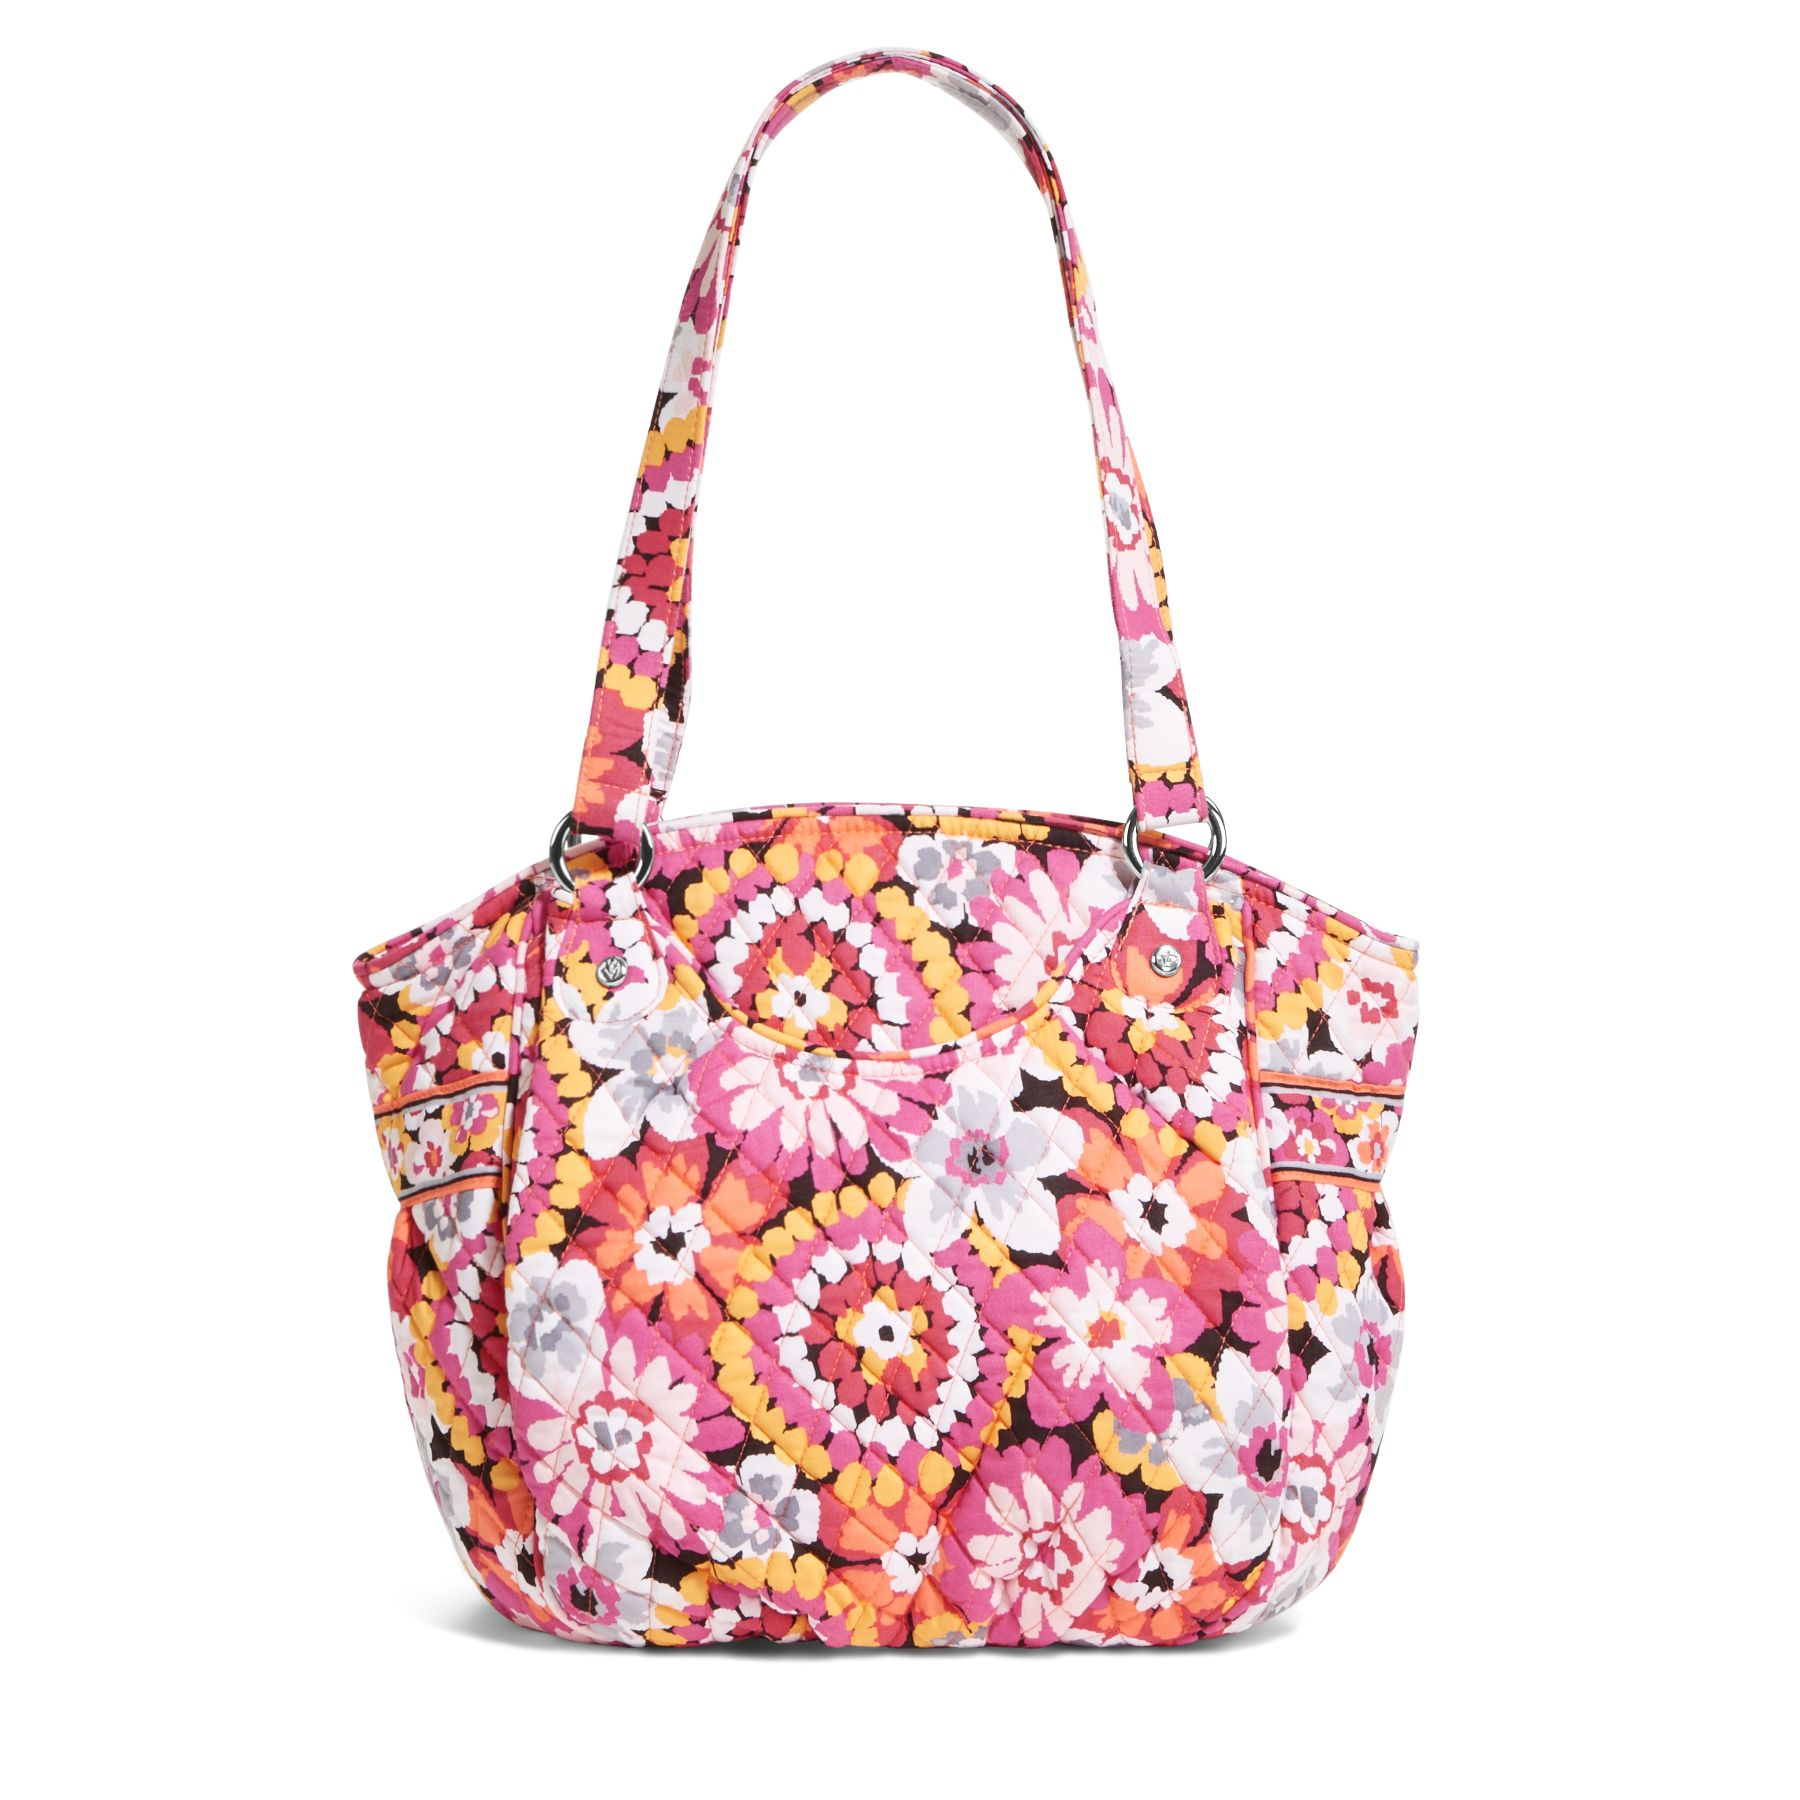 Vera Bradley. Every woman should own at least one head-turning bag. Vera Bradley, known for their feminine prints, will standout and satisfy your craving for color with their selection of luggage, handbags, wallets and more.